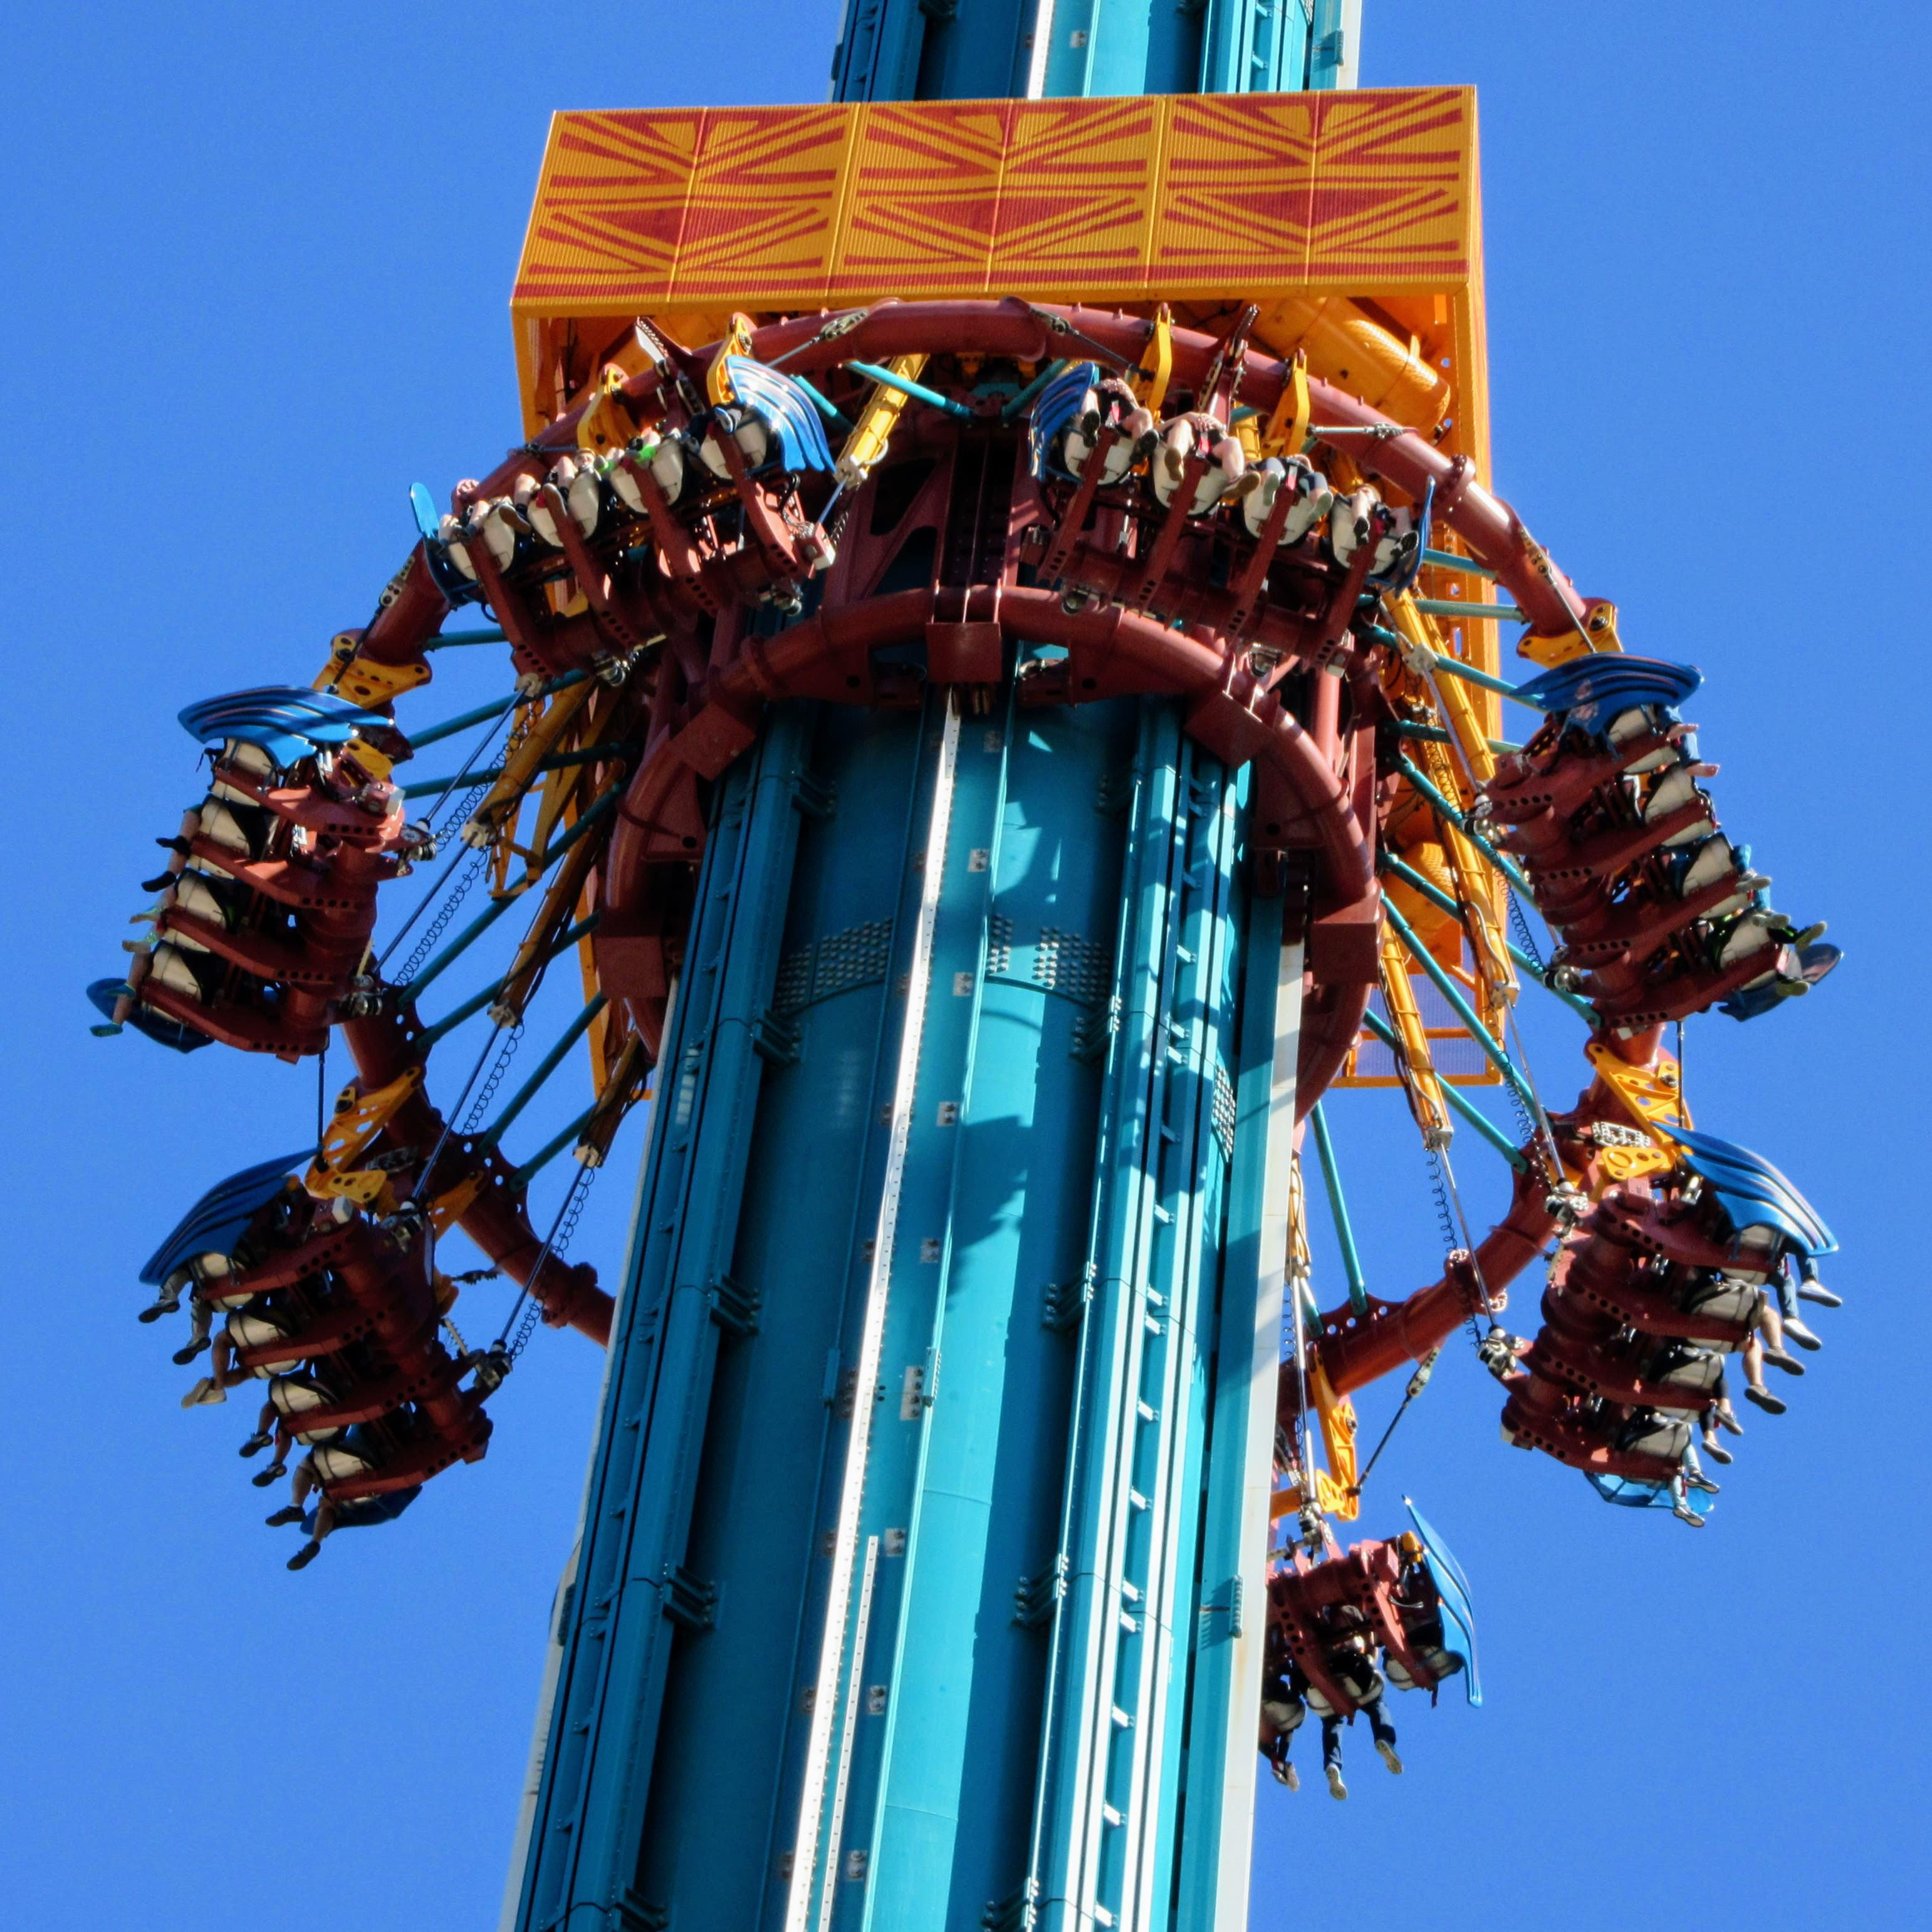 Falcons fury – a drop tower. | Visiting Busch Gardens Tampa Bay.